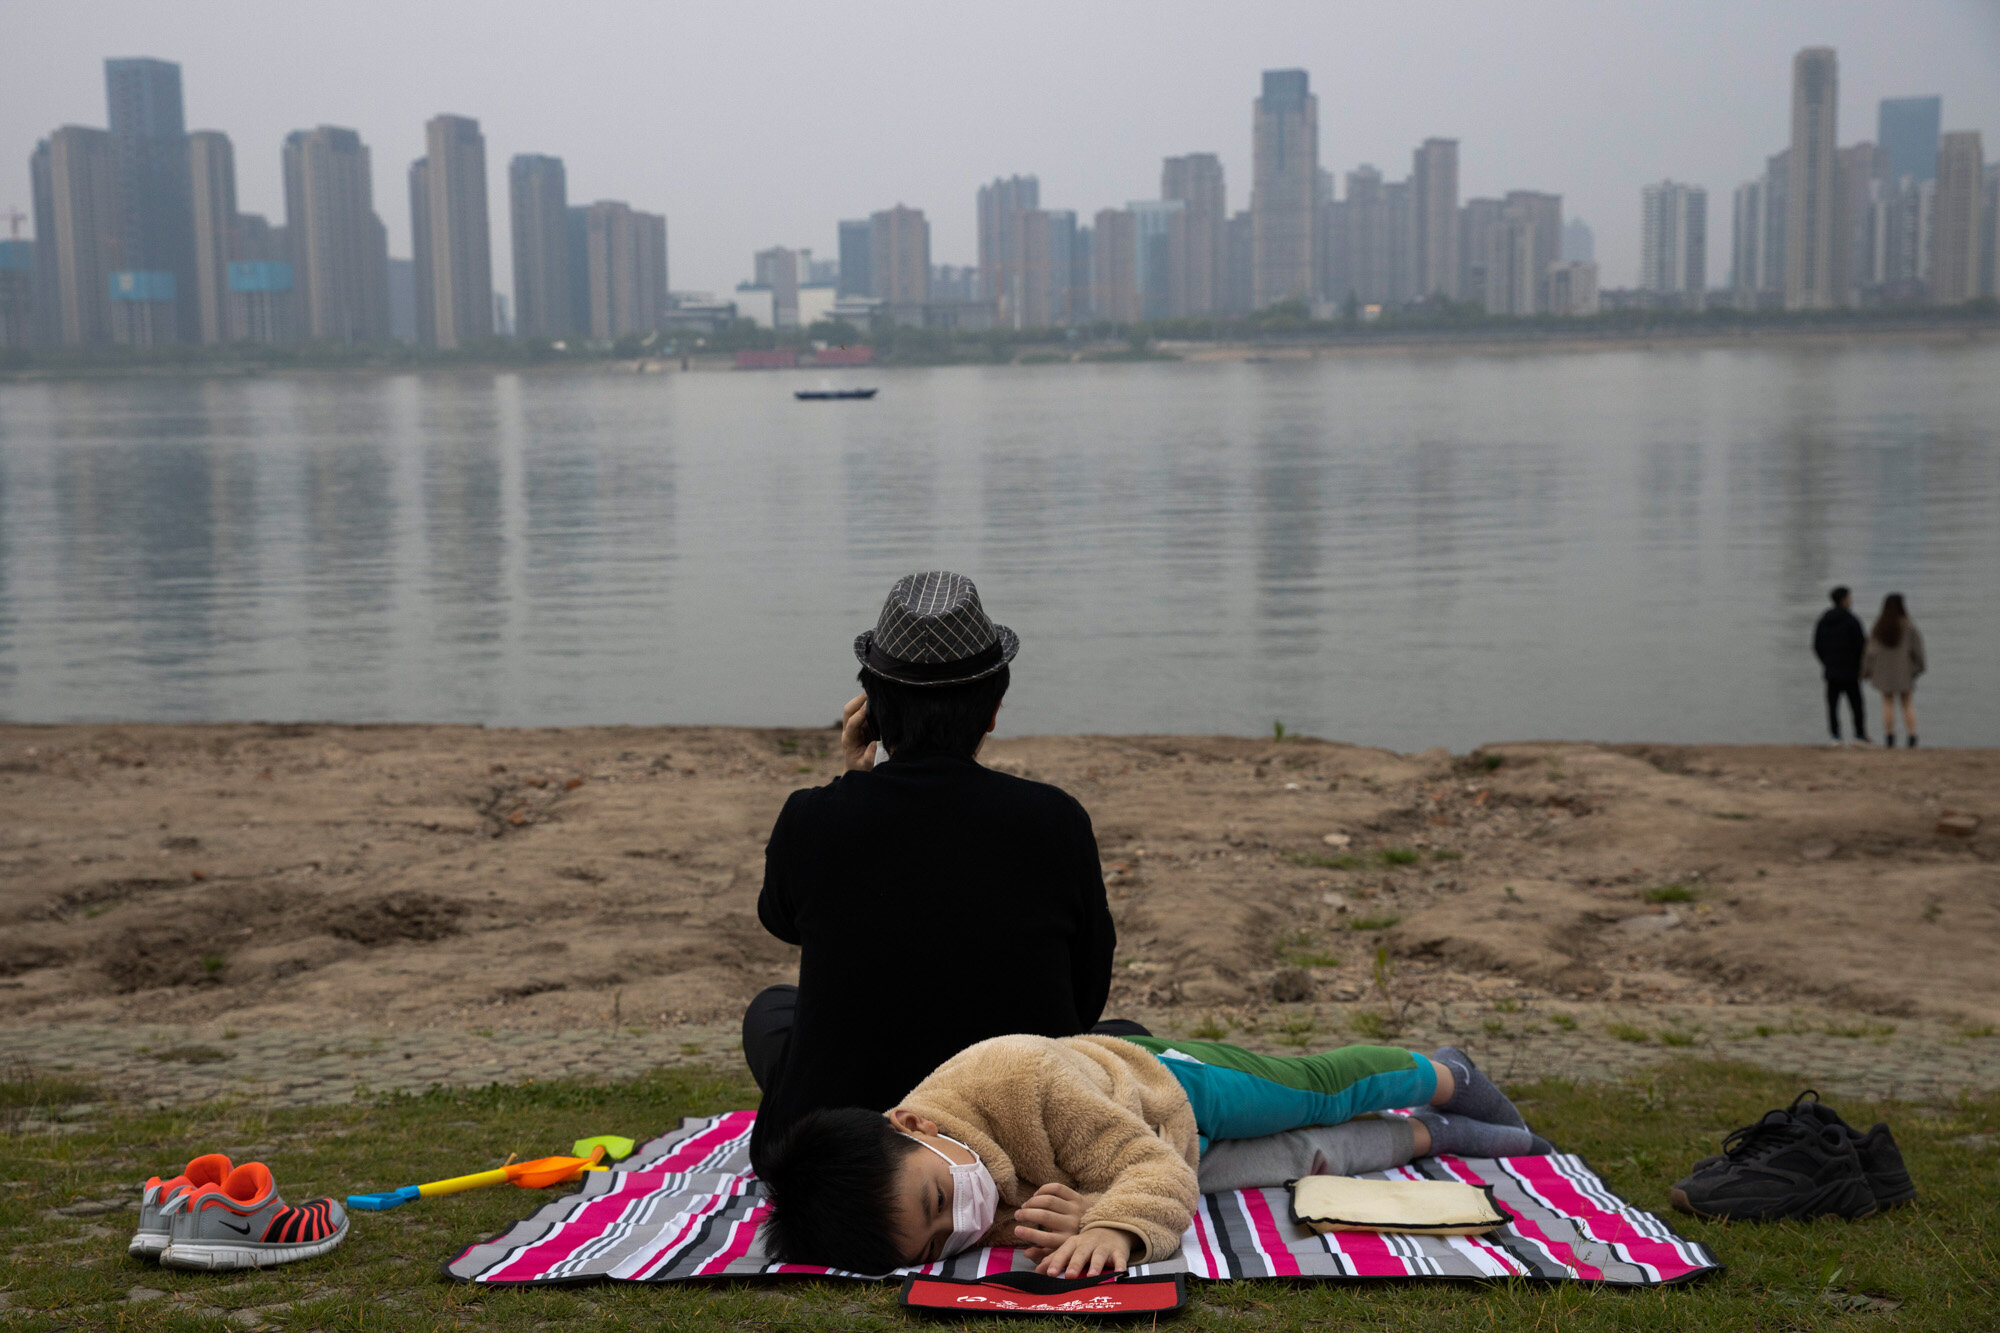 A child wearing a mask to protect against the coronavirus rests on the bank of the Yangtze River in Wuhan in central China's Hubei province on April 16, 2020. (AP Photo/Ng Han Guan)